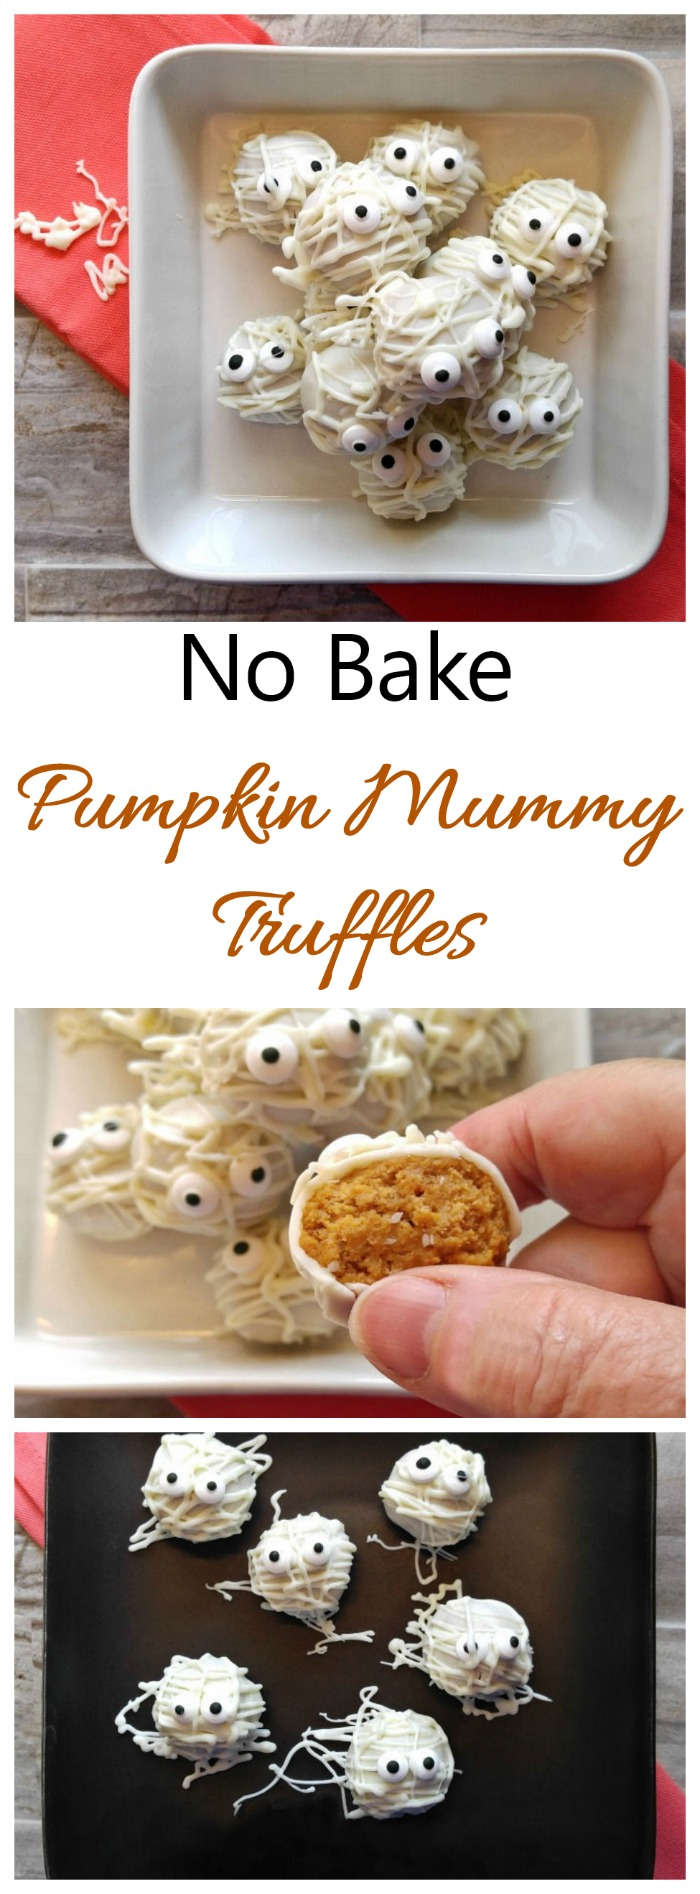 Mummy Truffles - Pumpkin Spice Cheesecake Truffles - Halloween Treat